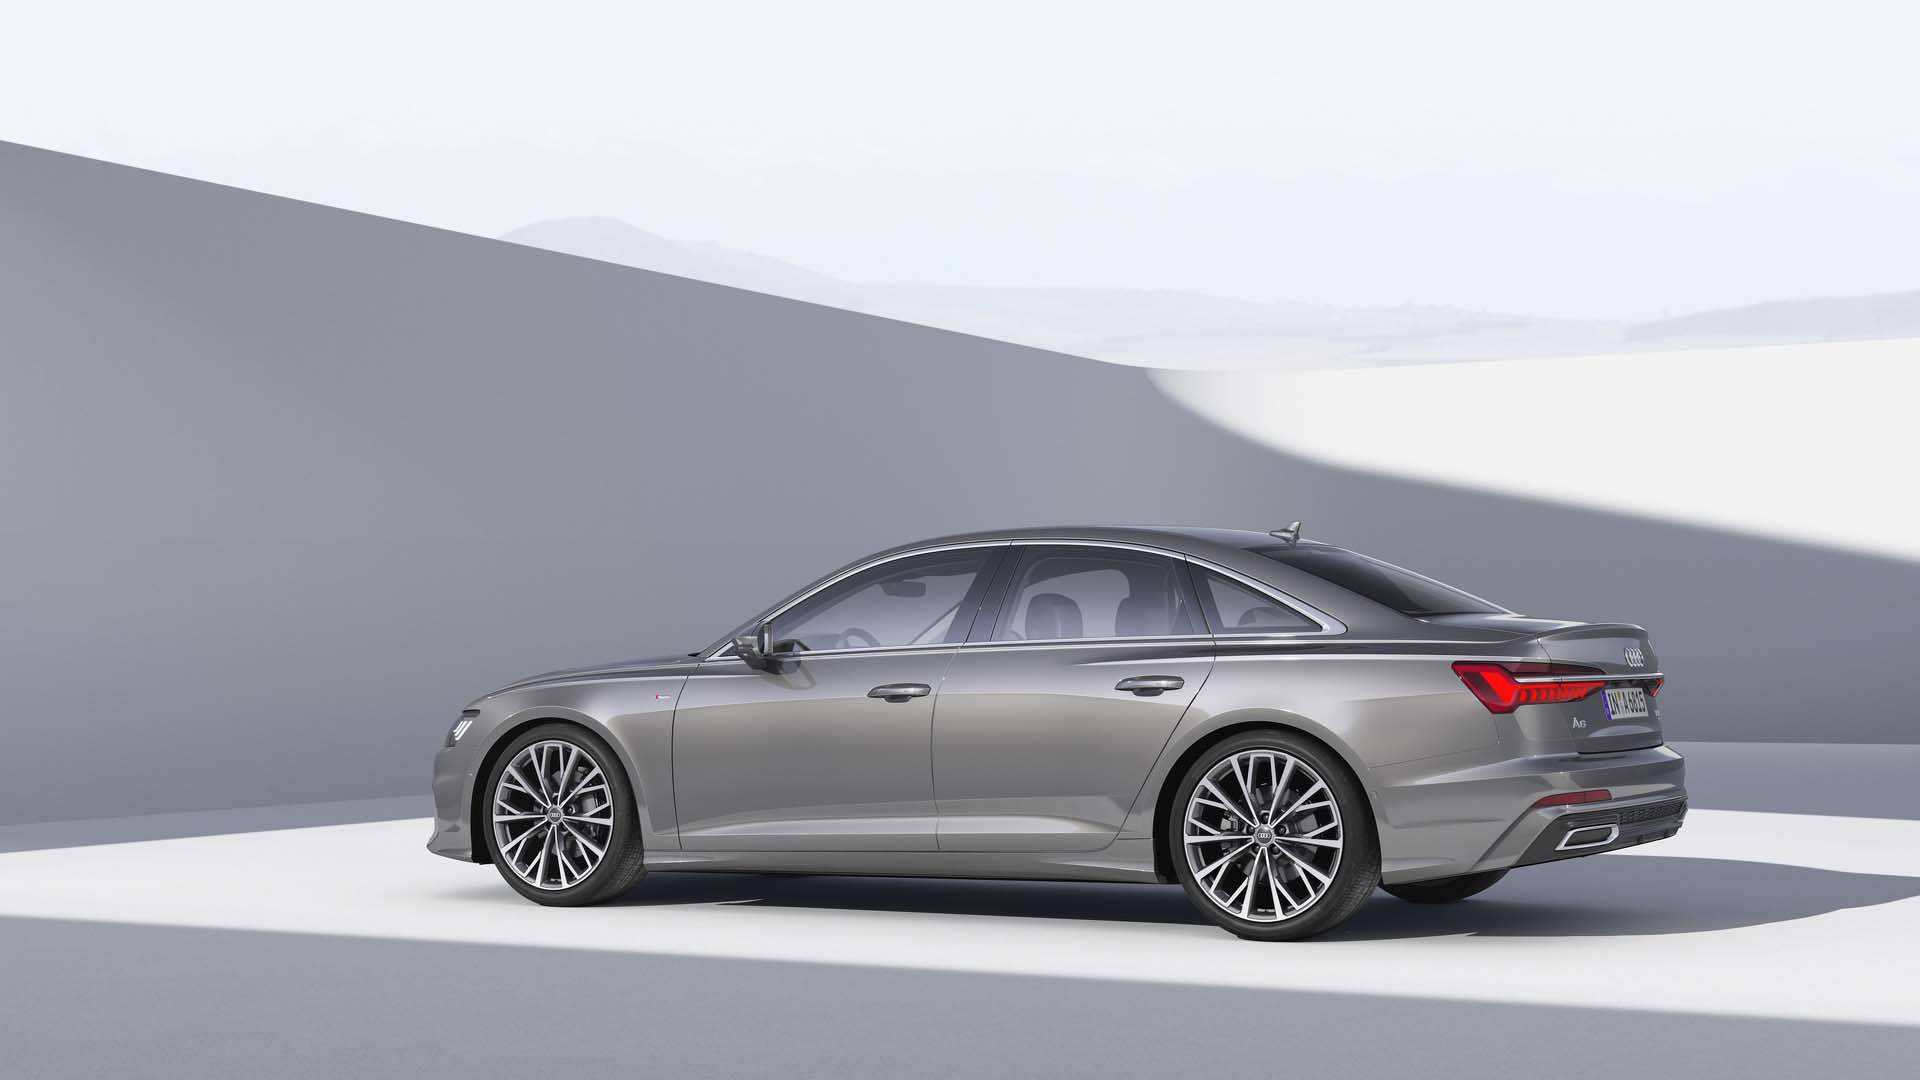 83 Great Audi A6 2019 Geneva Review New Review for Audi A6 2019 Geneva Review